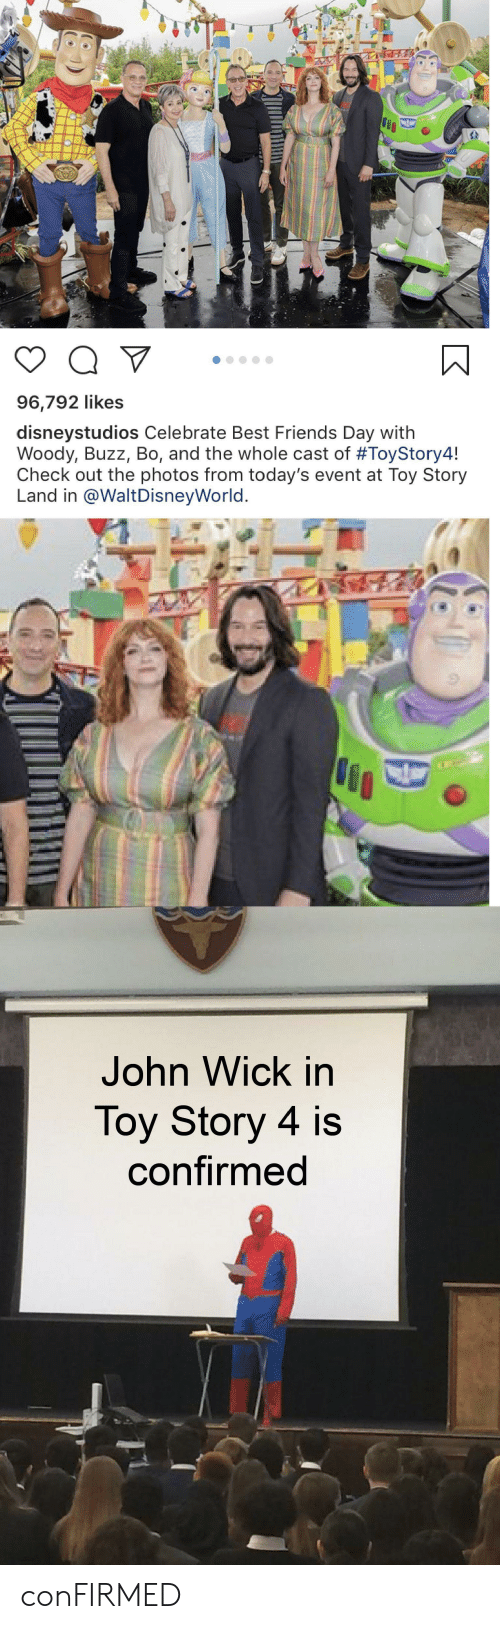 Friends, John Wick, and Toy Story: Q V  96,792 likes  disneystudios Celebrate Best Friends Day with  Woody, Buzz, Bo, and the whole cast of #ToyStory4!  Check out the photos from today's event at Toy Story  Land in @WaltDisneyWorld.  John Wick in  Toy Story 4 is  confirmed conFIRMED